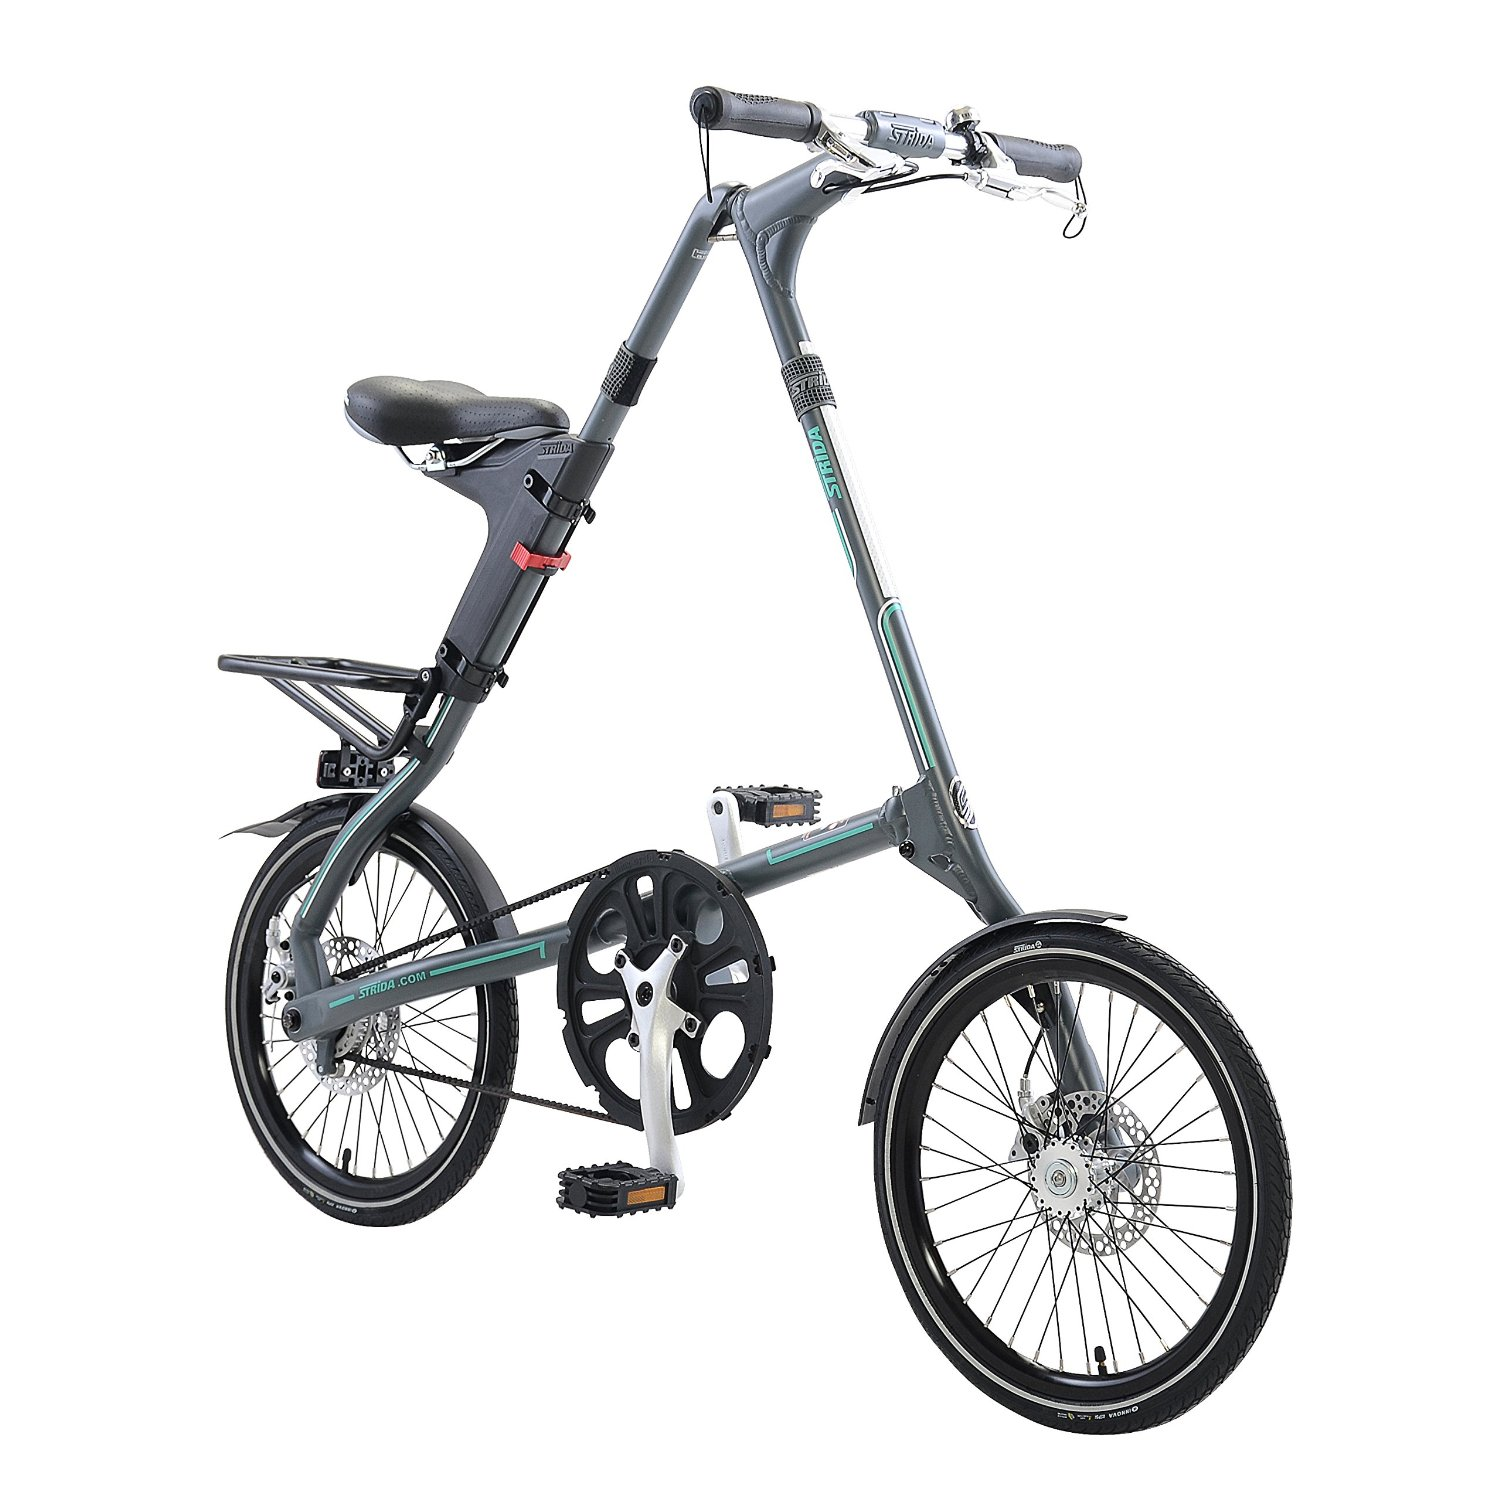 Strida folding bike: overview, features and reviews 95